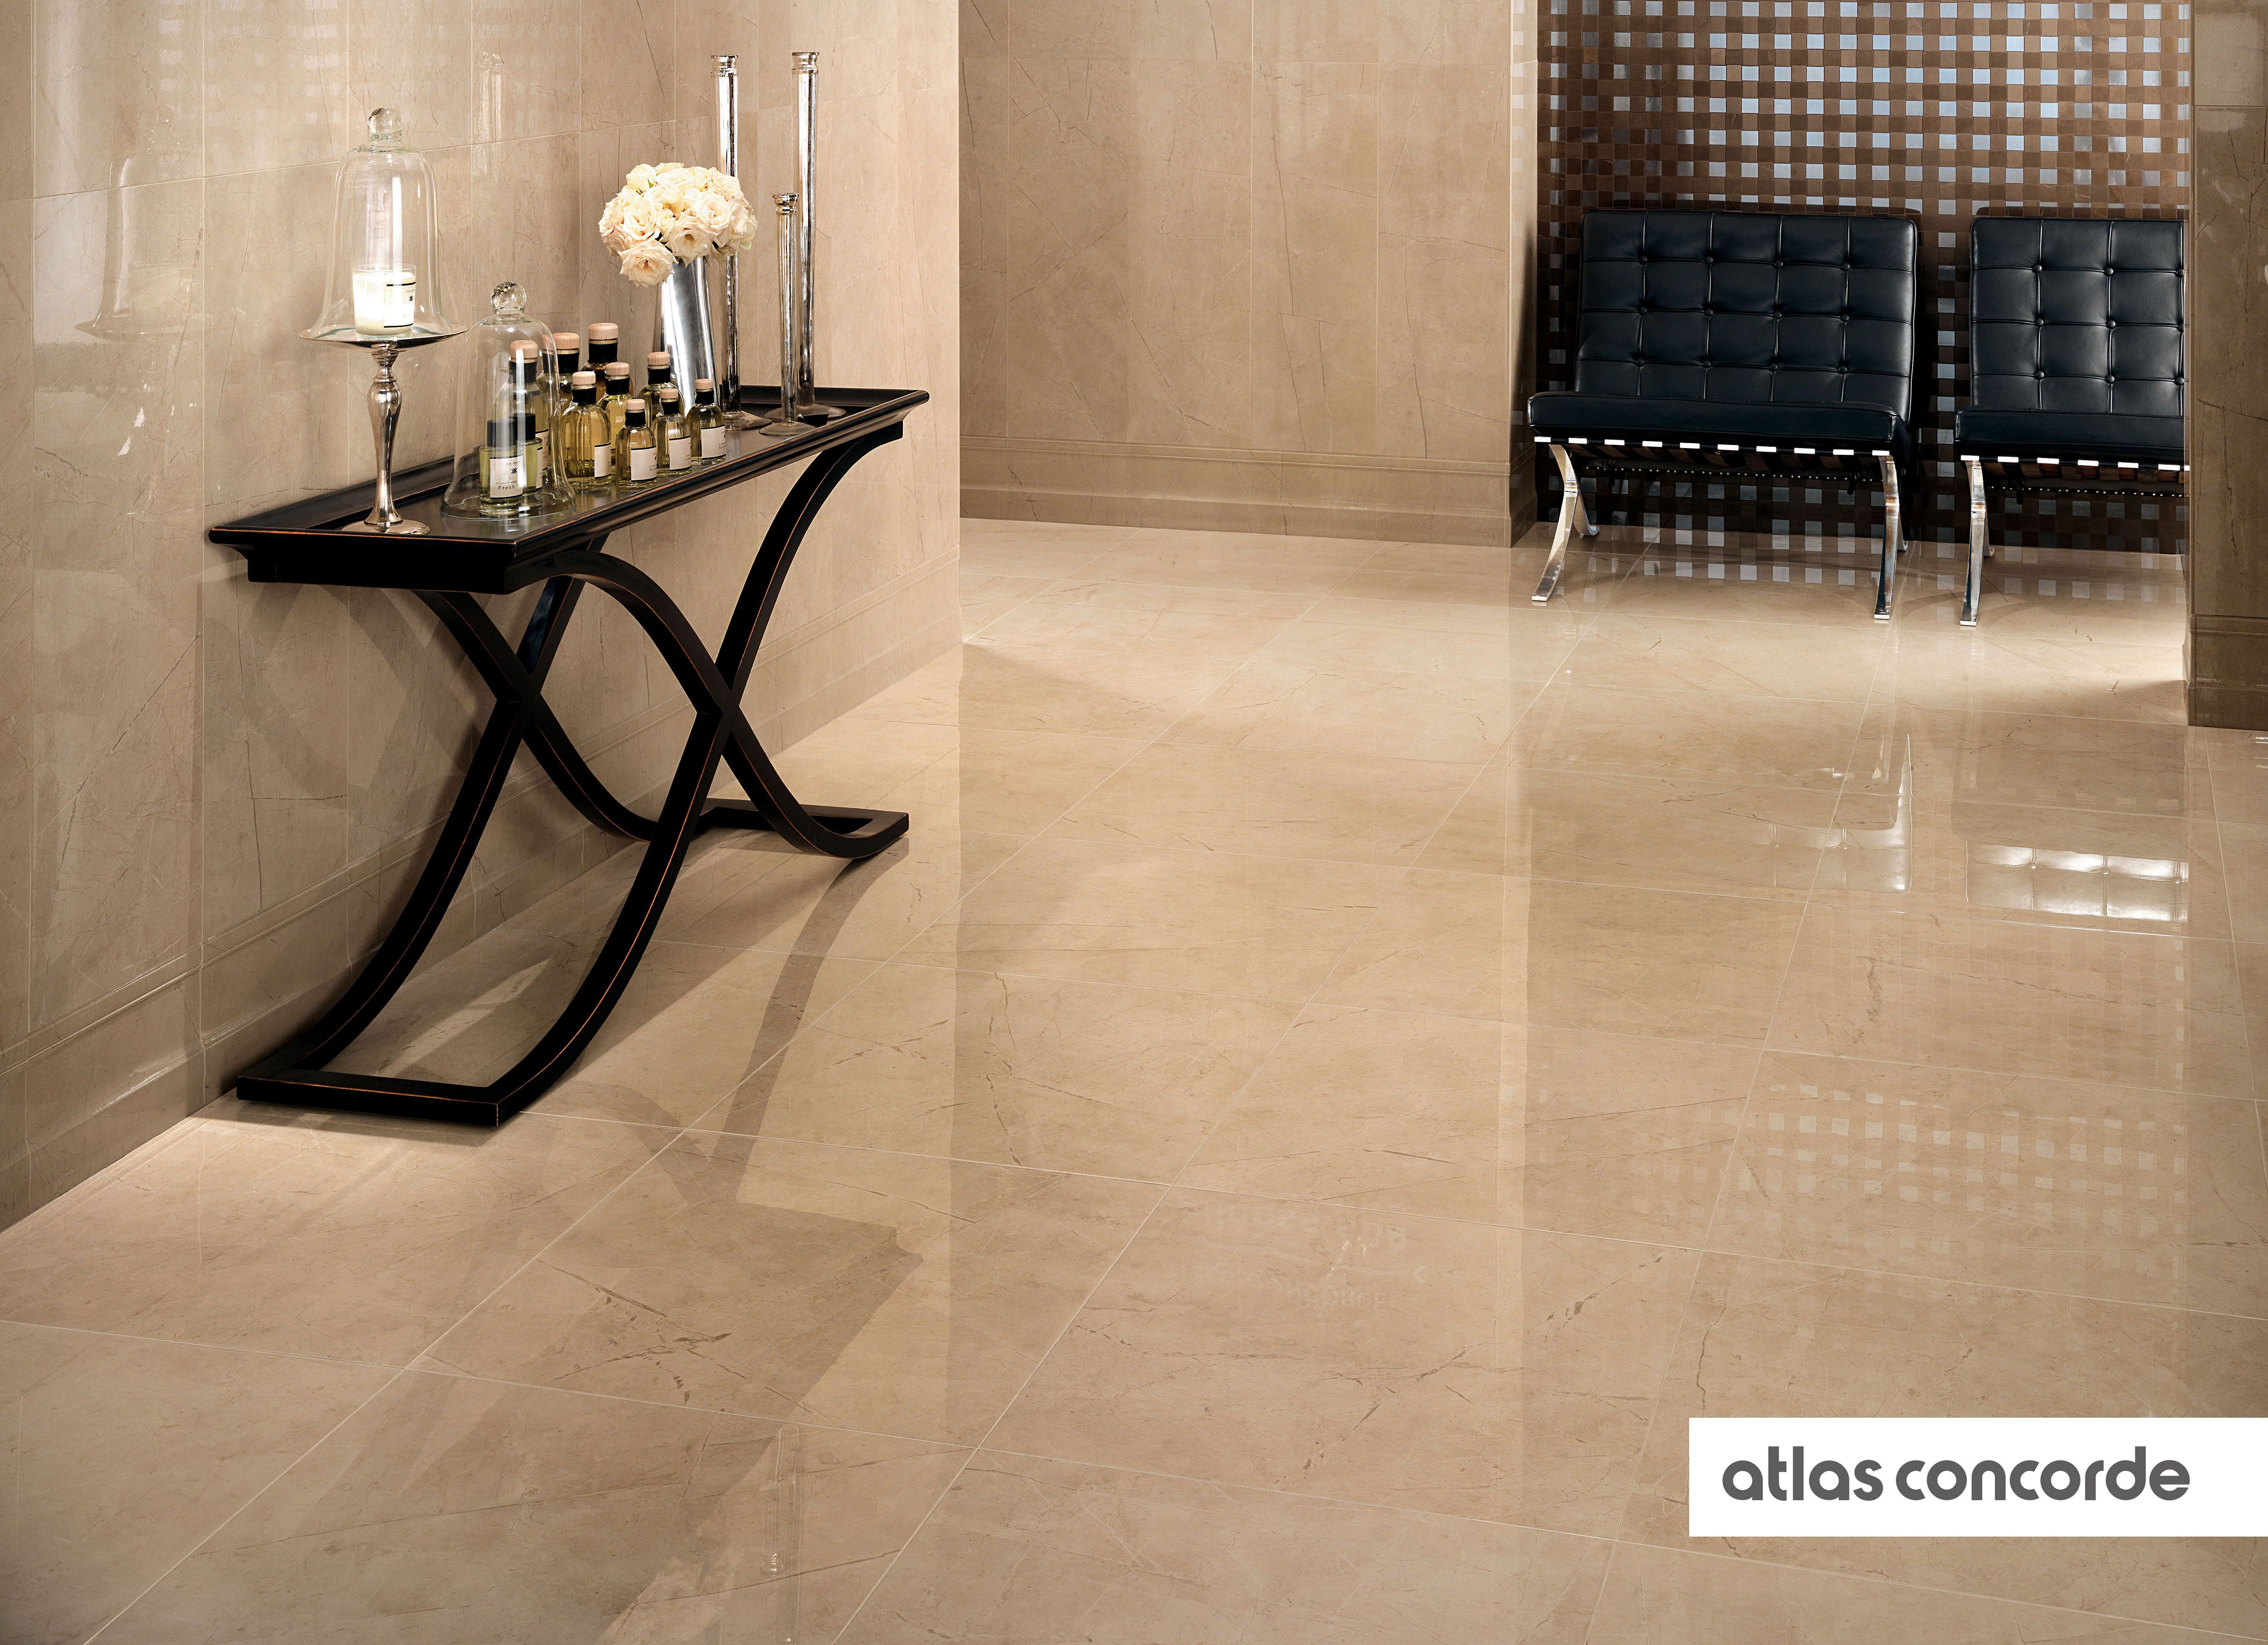 Collections floor design concorde and marbles marvel bronze floor design atlasconcorde tiles ceramic dailygadgetfo Images